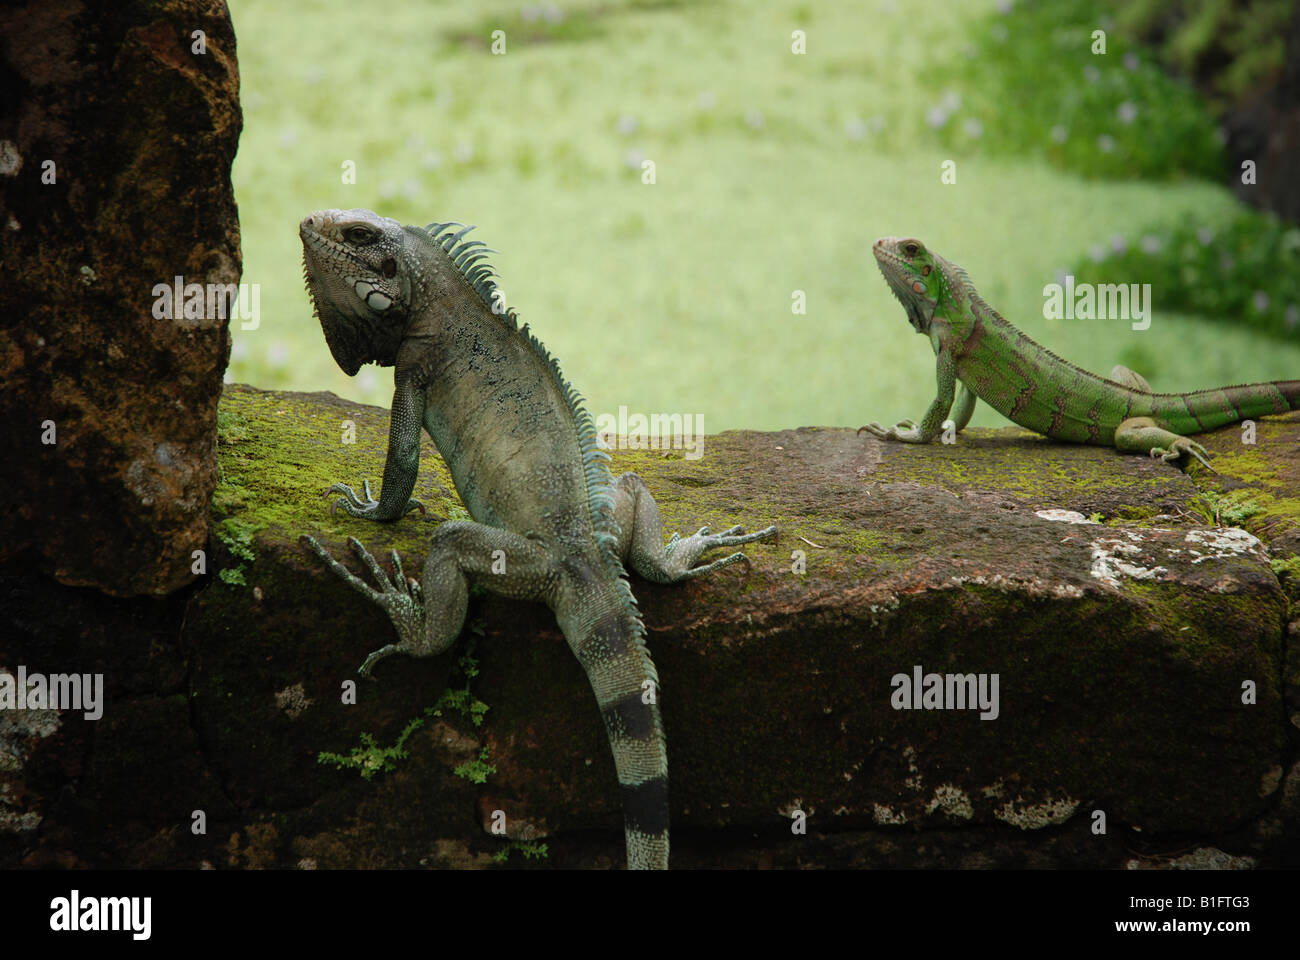 iguans on a rockwall by the sun - Stock Image